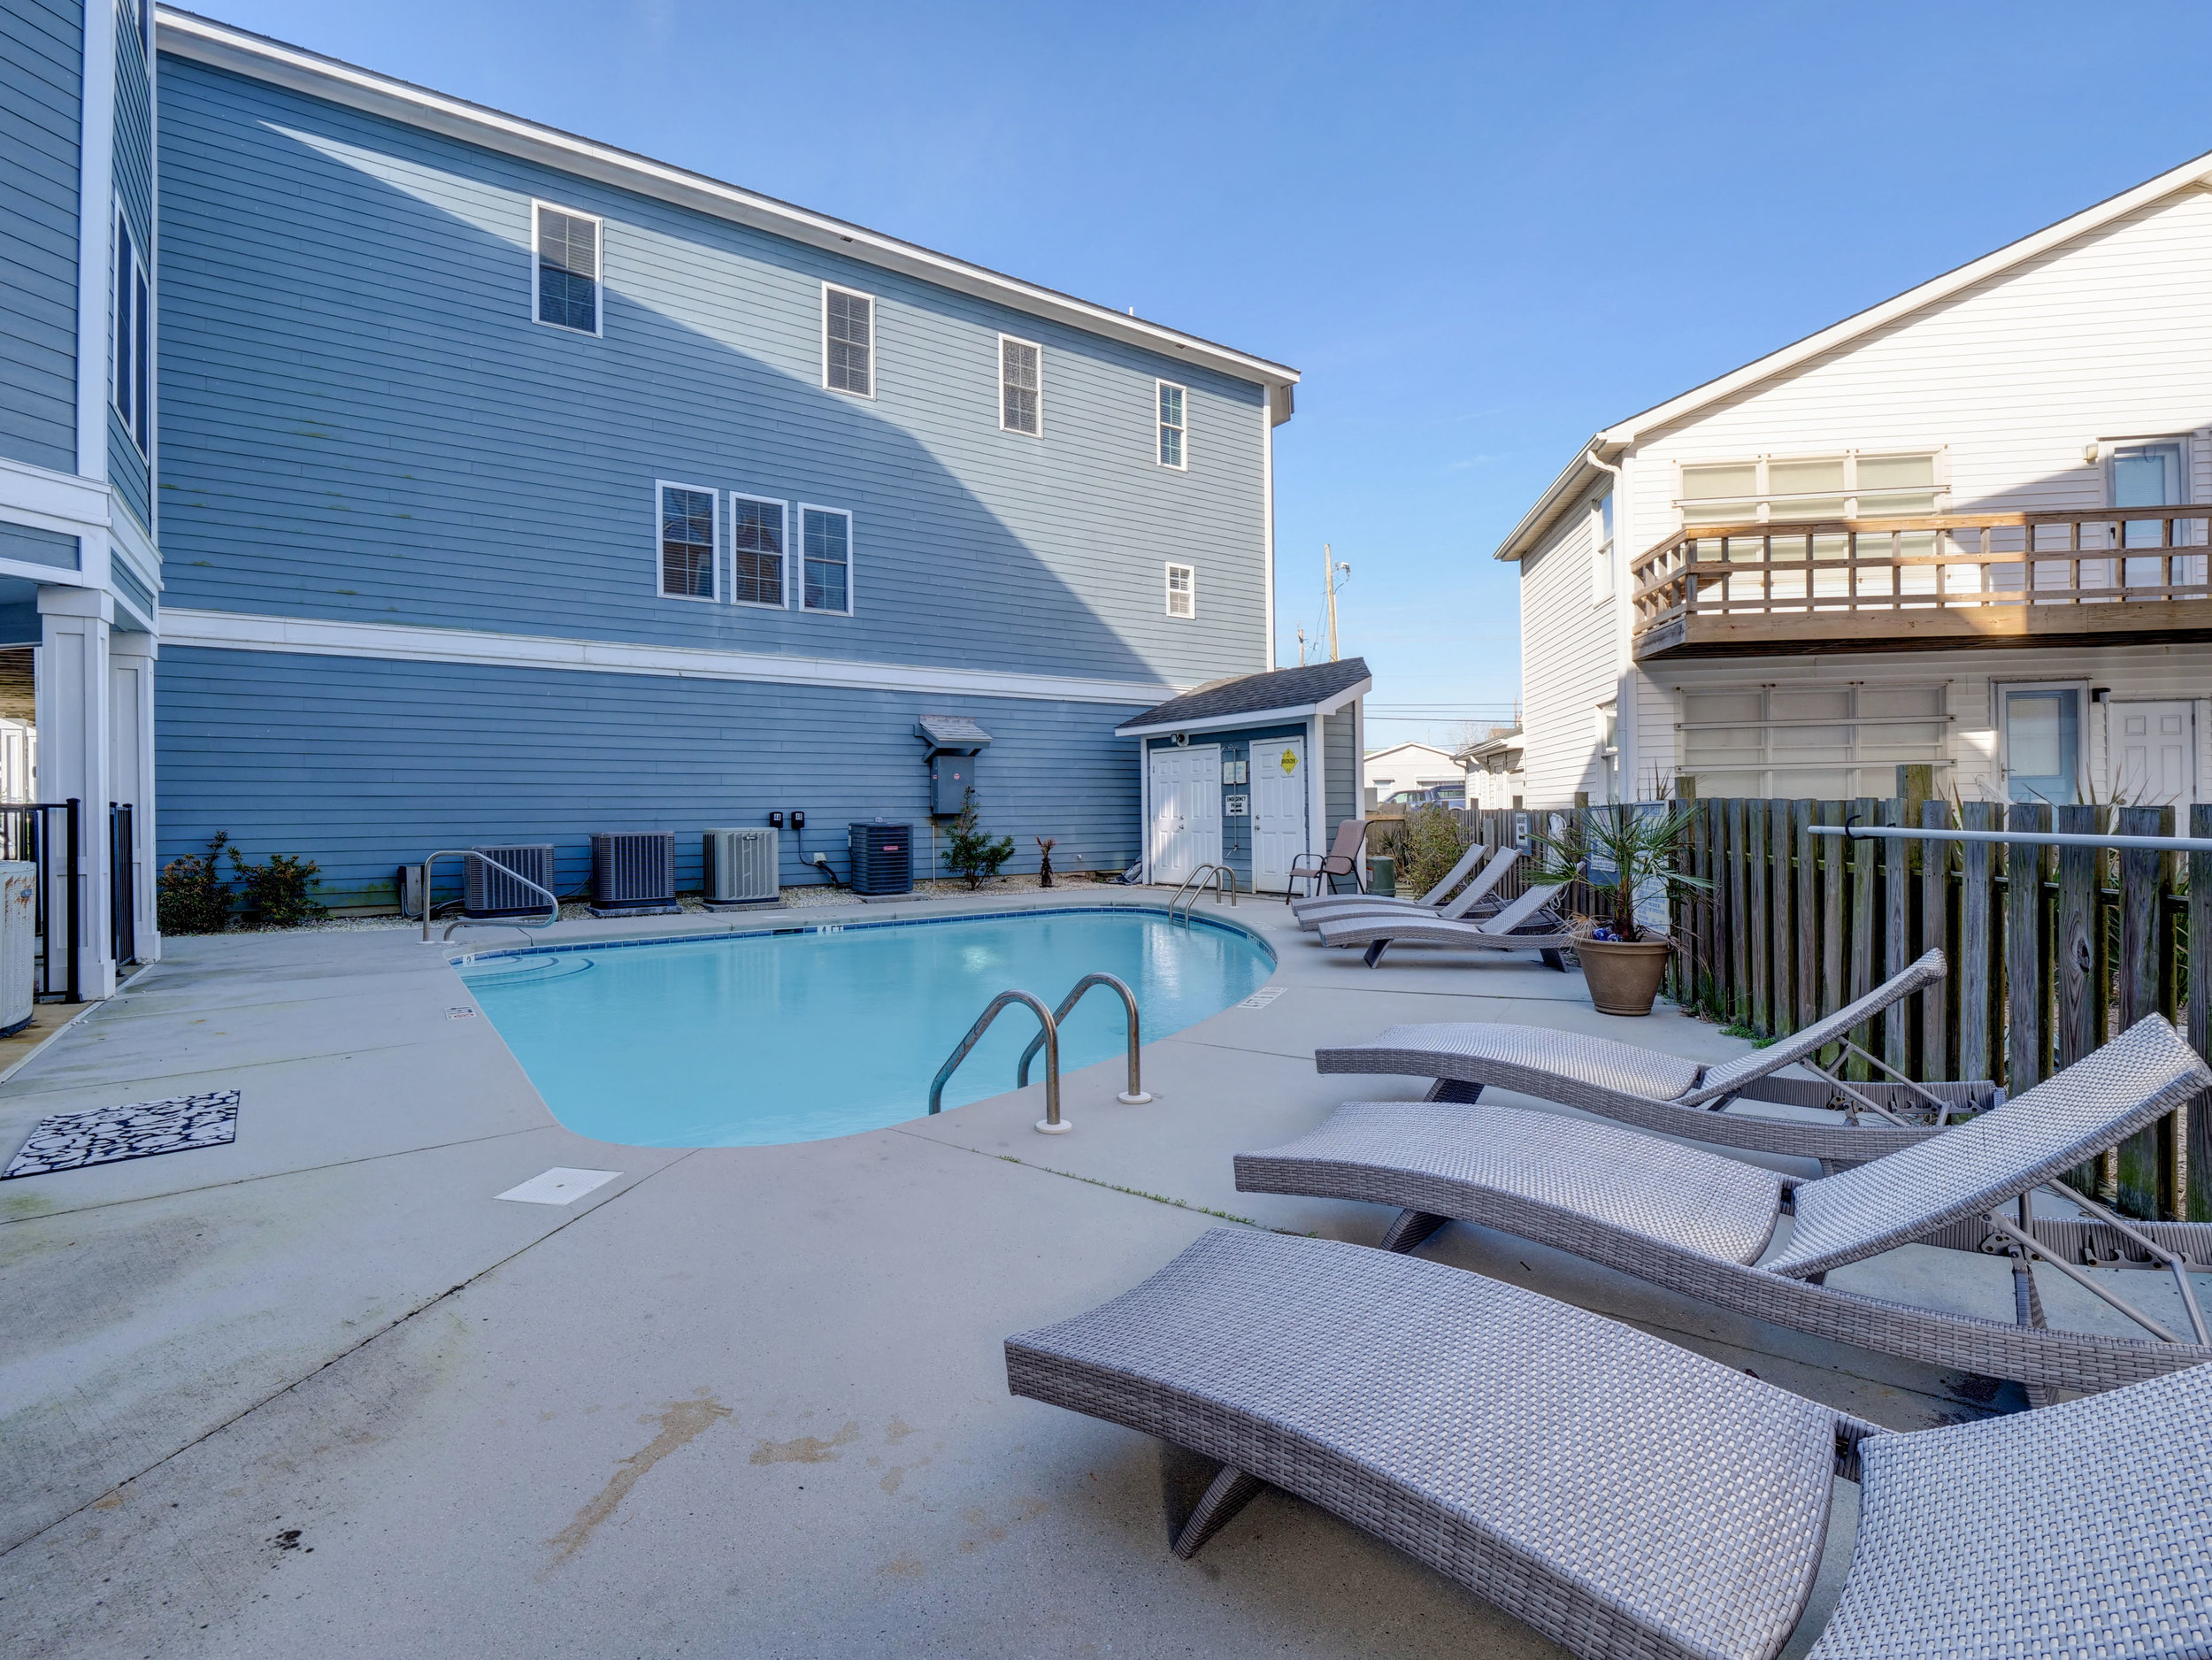 202 N Fort Fisher Blvd Unit 8-print-032-54-Kure Beach Villas community-3709x2783-300dpi.jpg